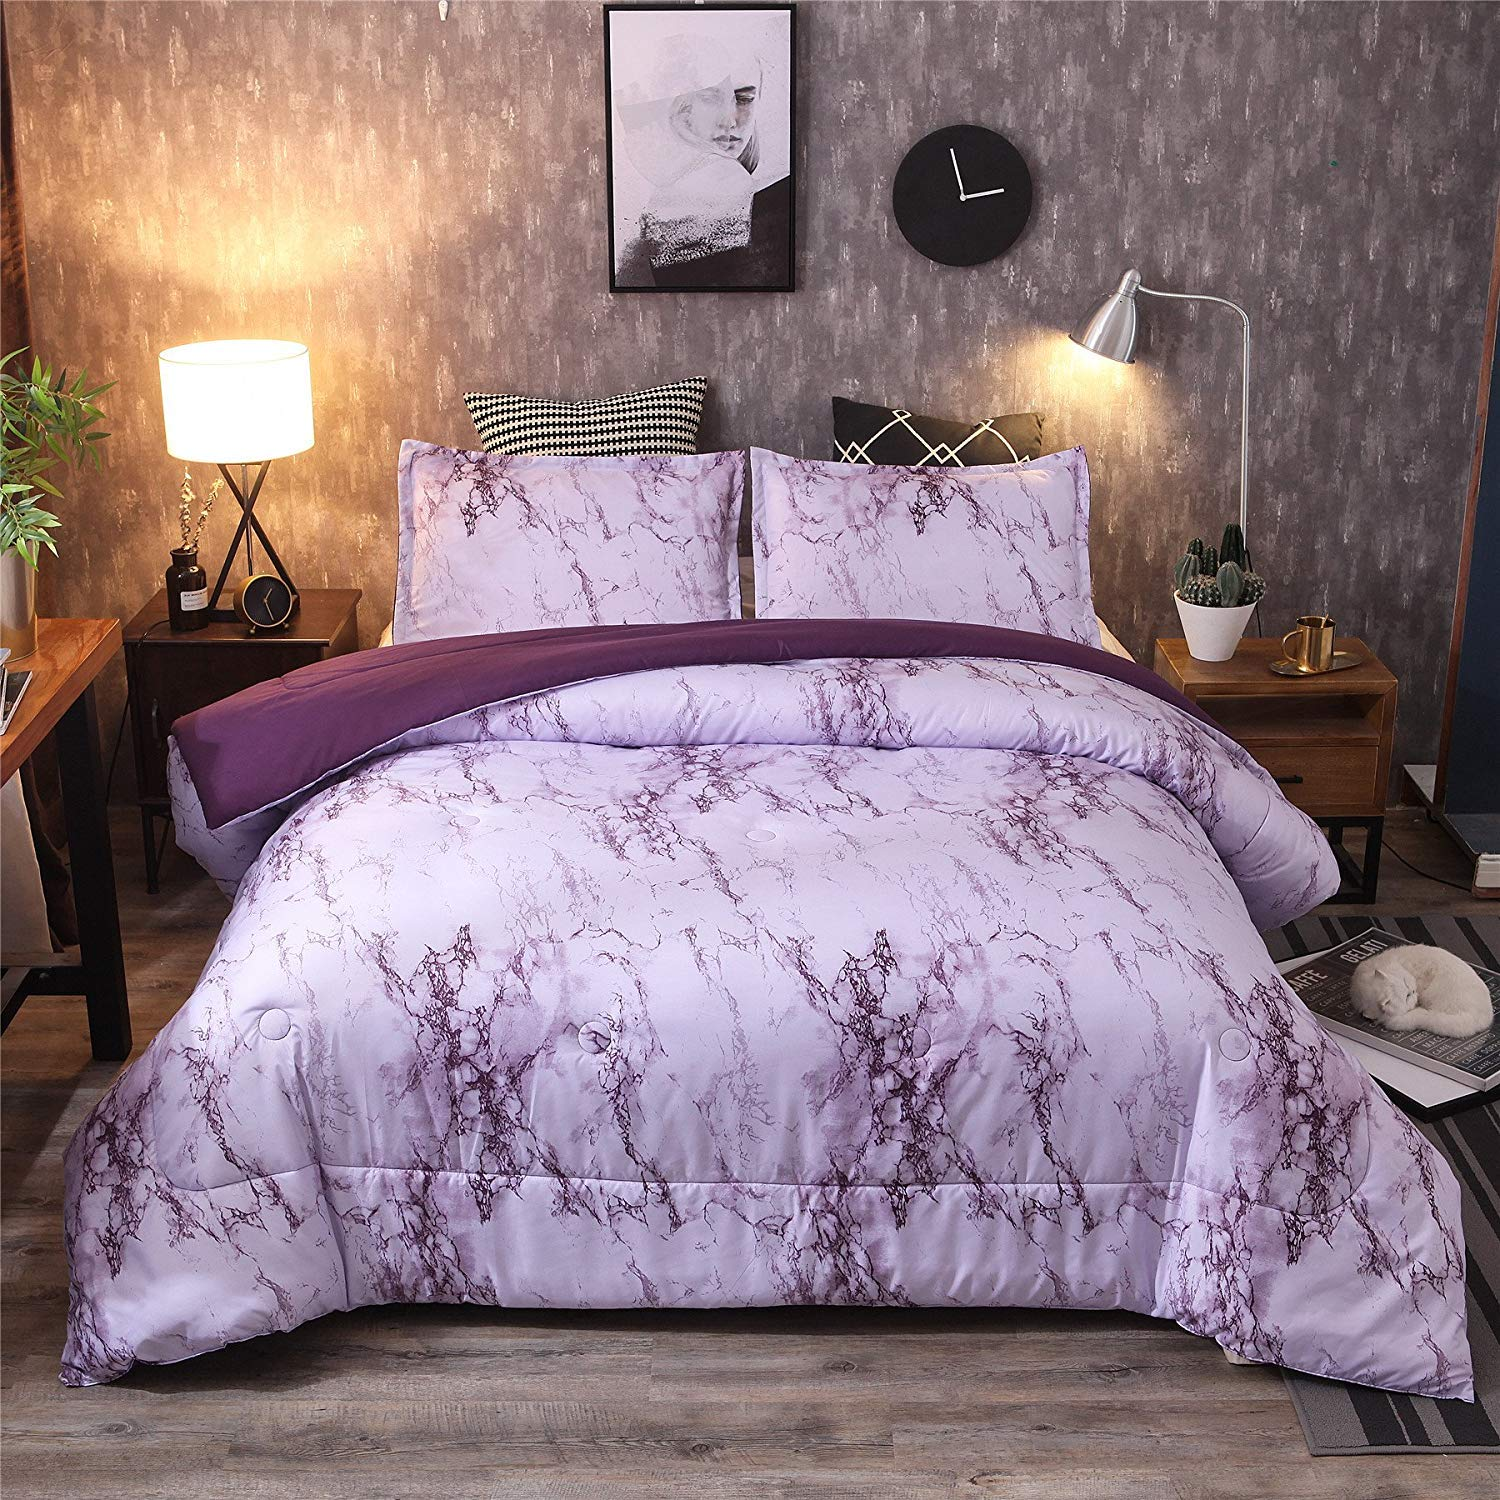 A Nice Night Marble Design Quilt Comforter Set Bed-in-a-Bag,Queen (Purple-Marble